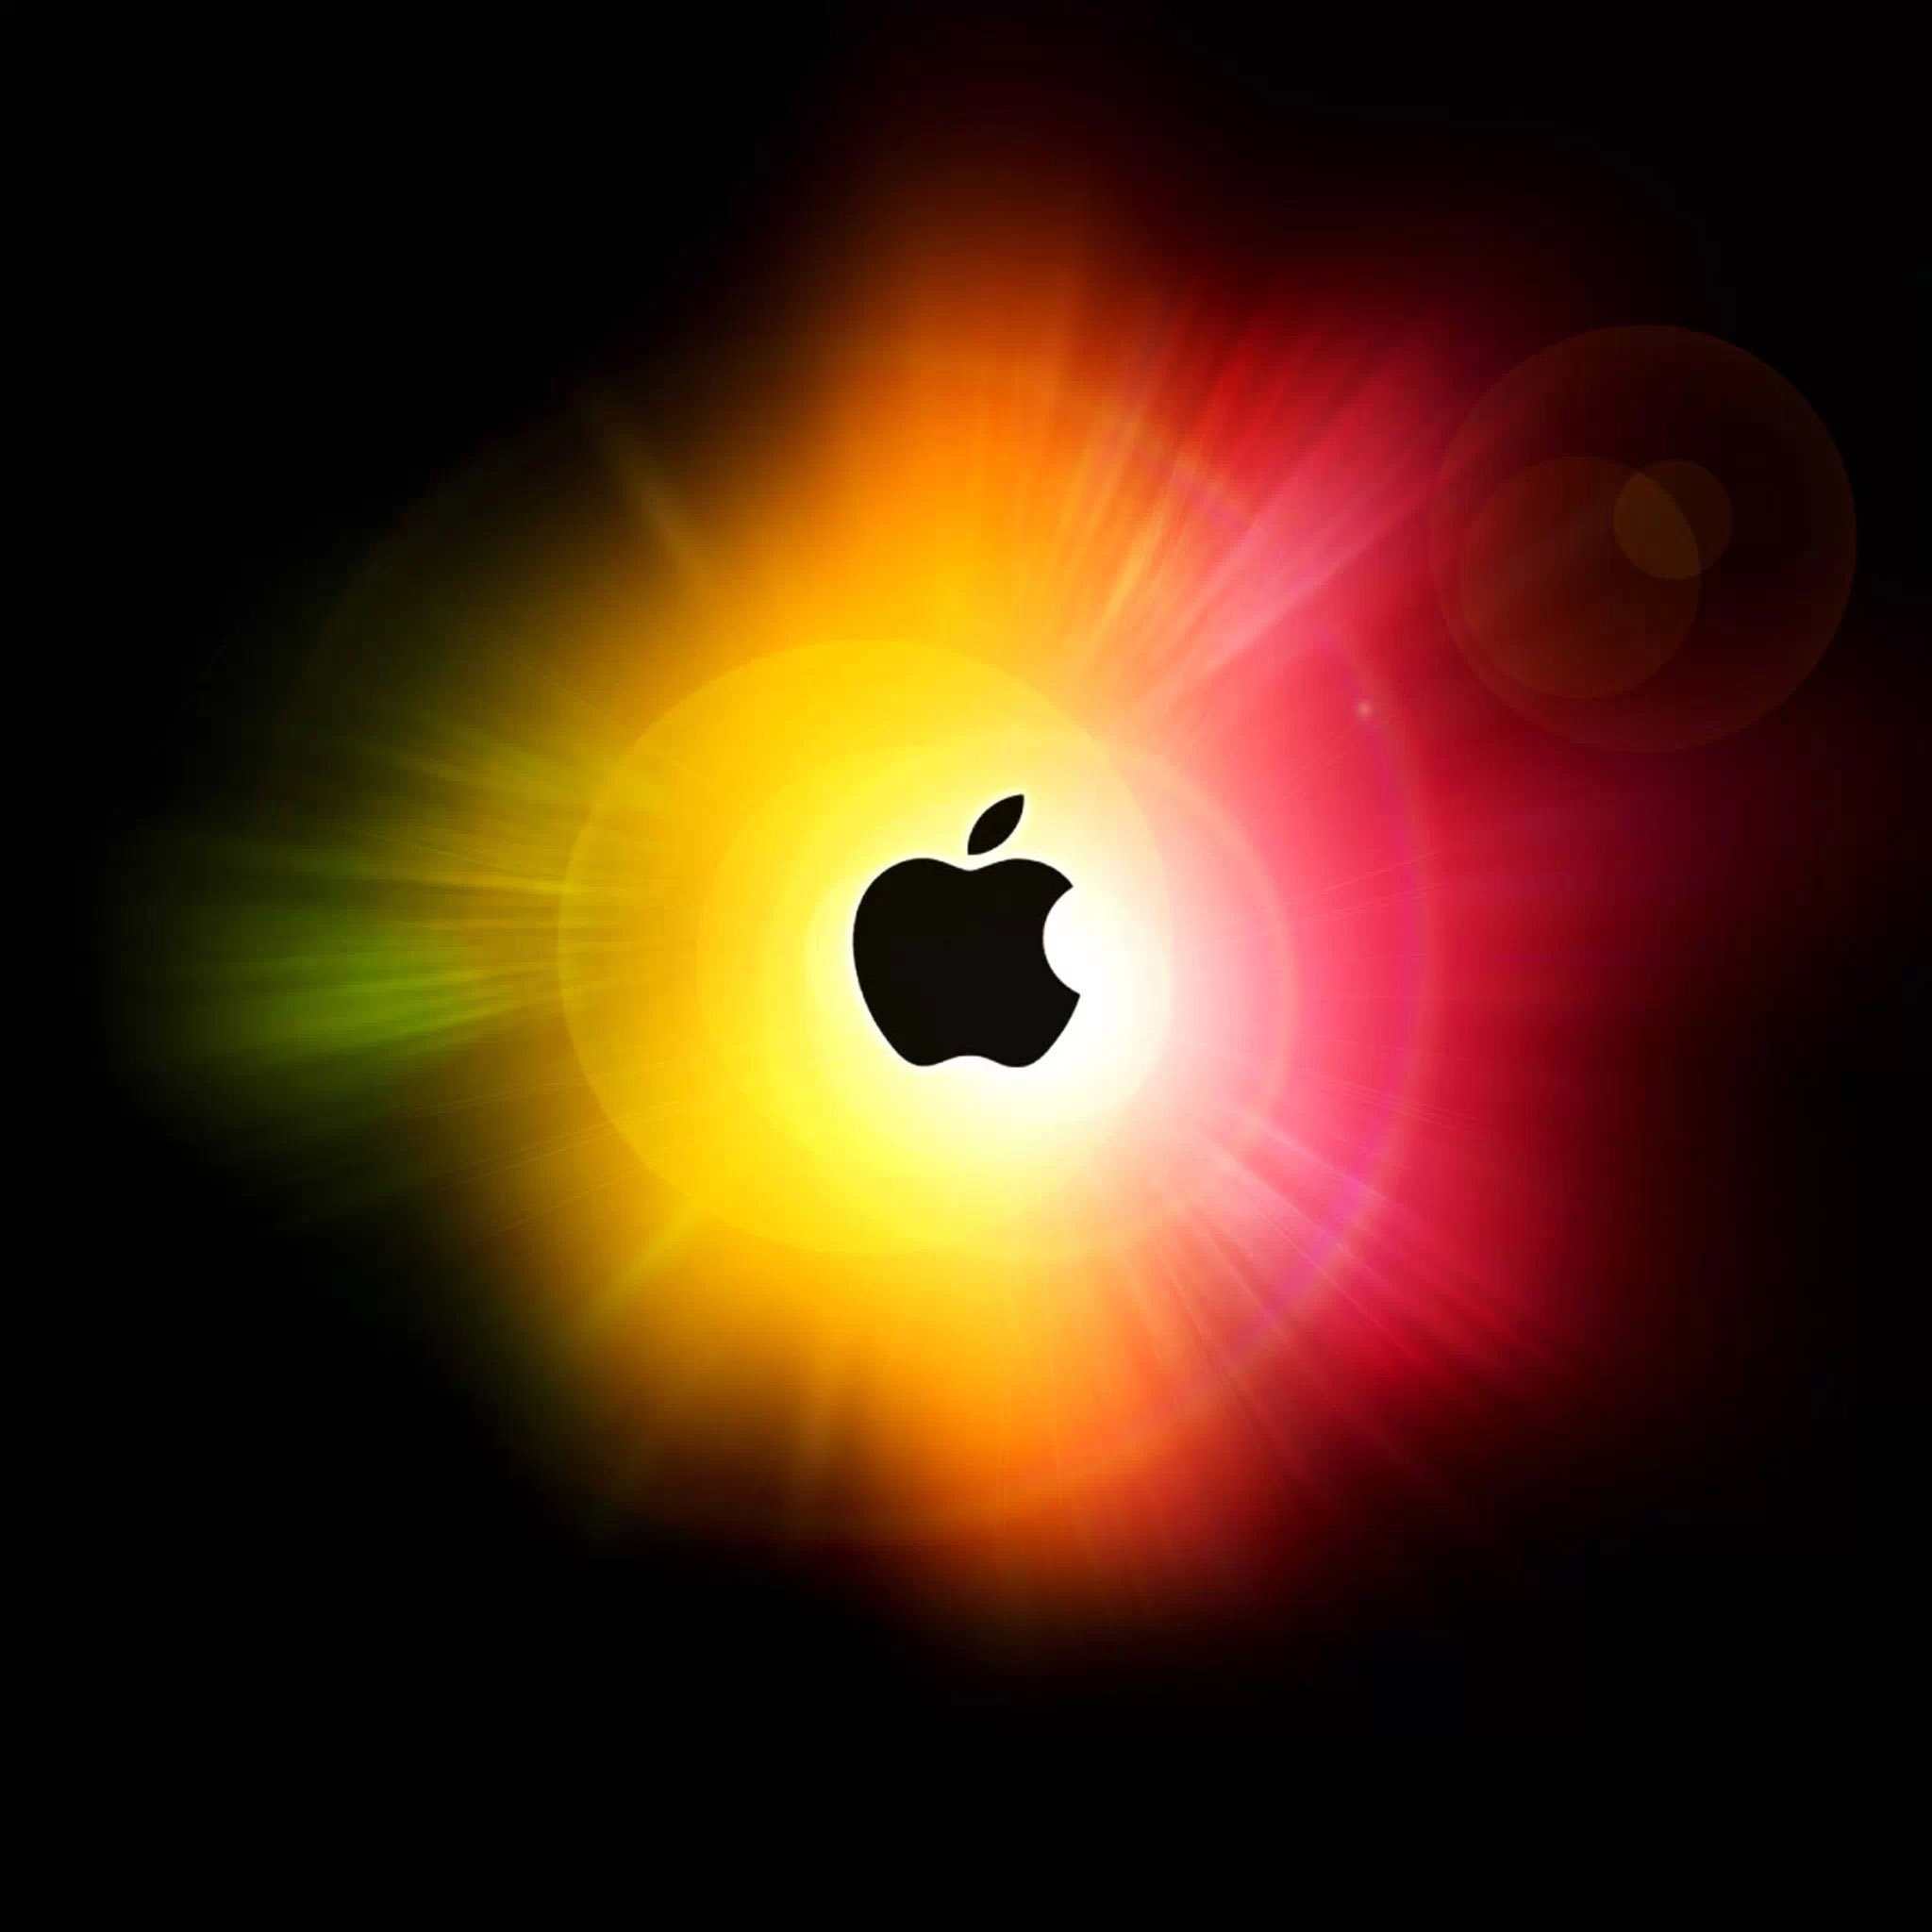 iPad Wallpapers Glowing apple logo   Apple iPad iPad 2 iPad mini 2048x2048